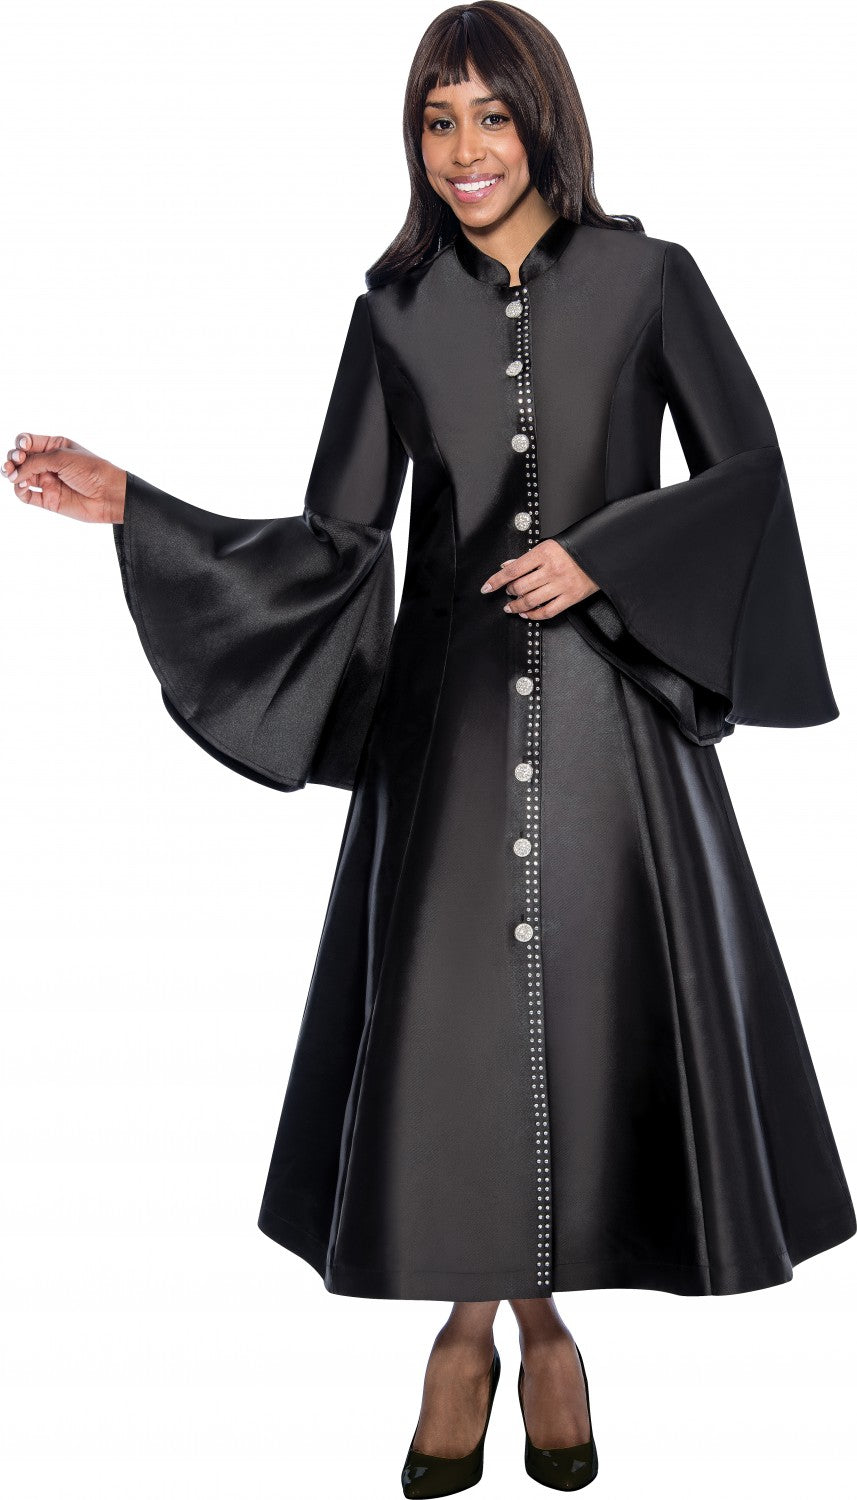 Regal Robes RR9031-Black - Church Suits For Less